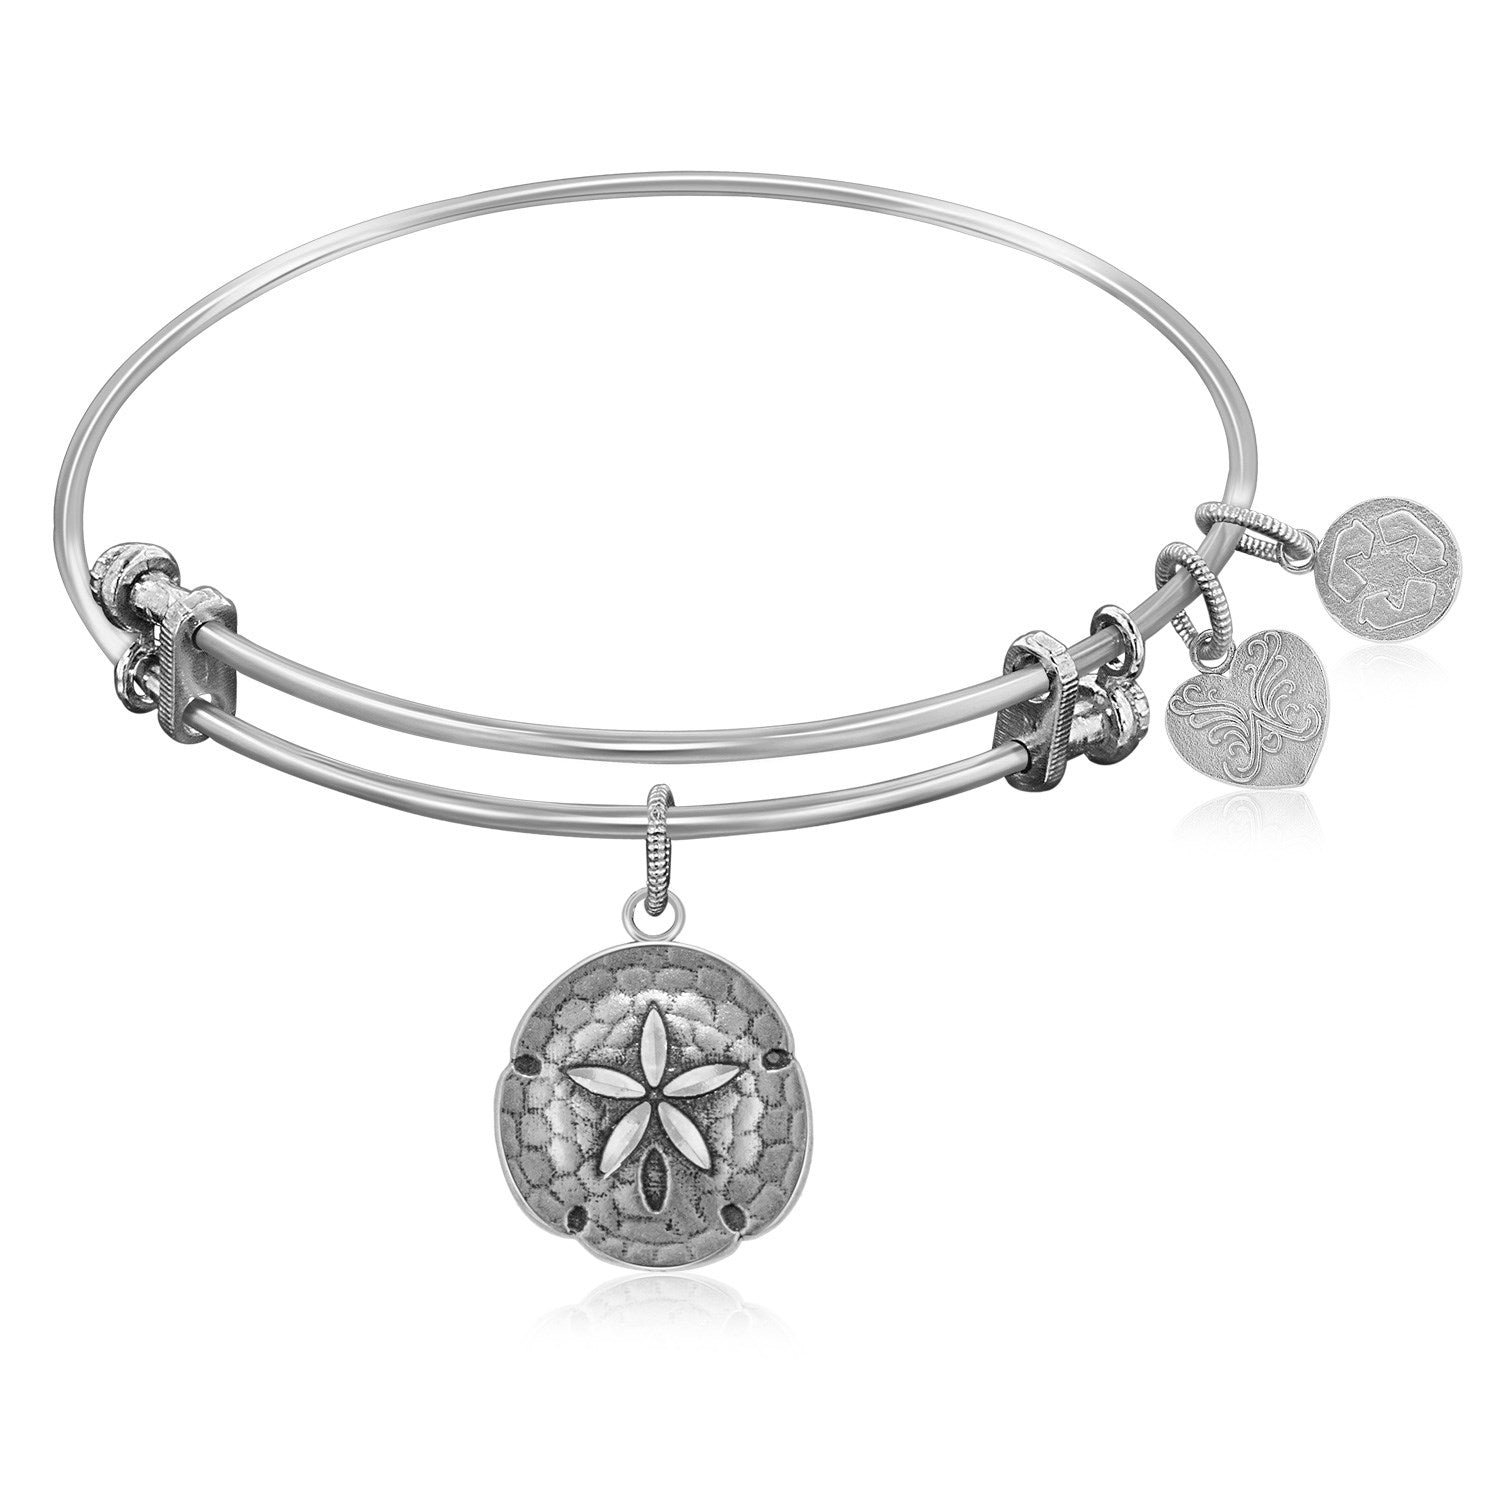 Expandable Bangle in White Tone Brass with Sand Dollar Symbol